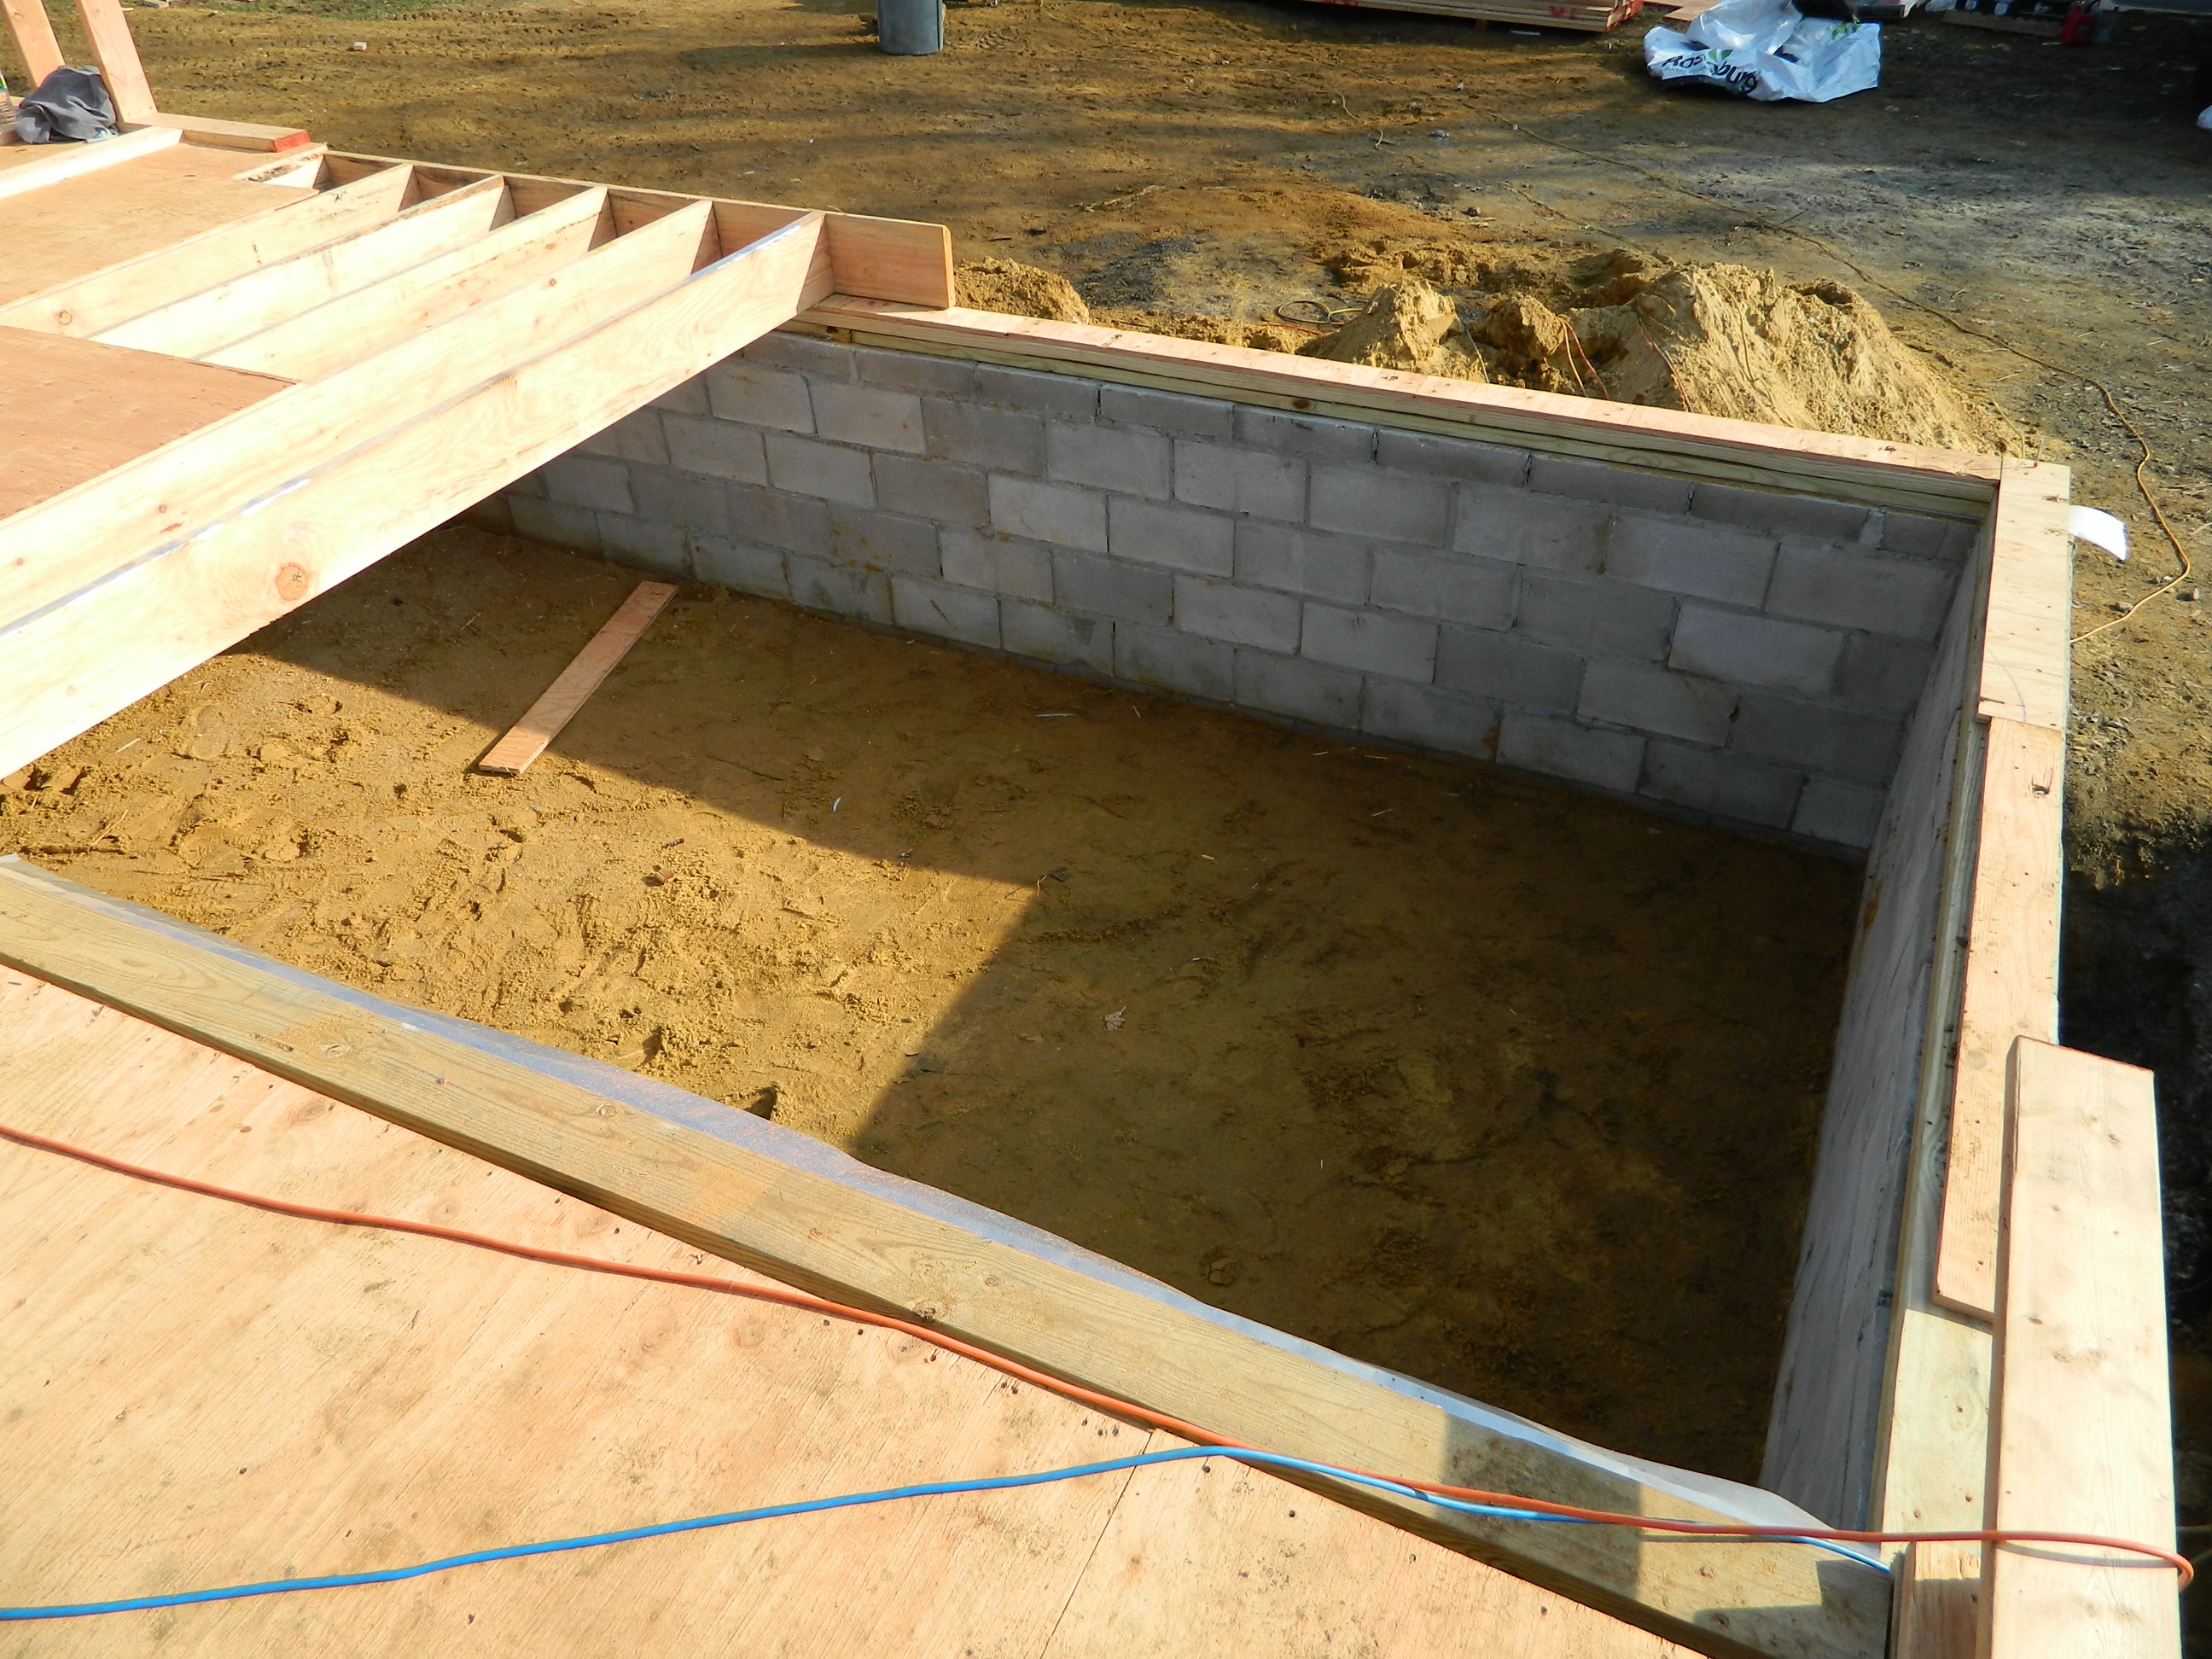 New foundation and floor framing